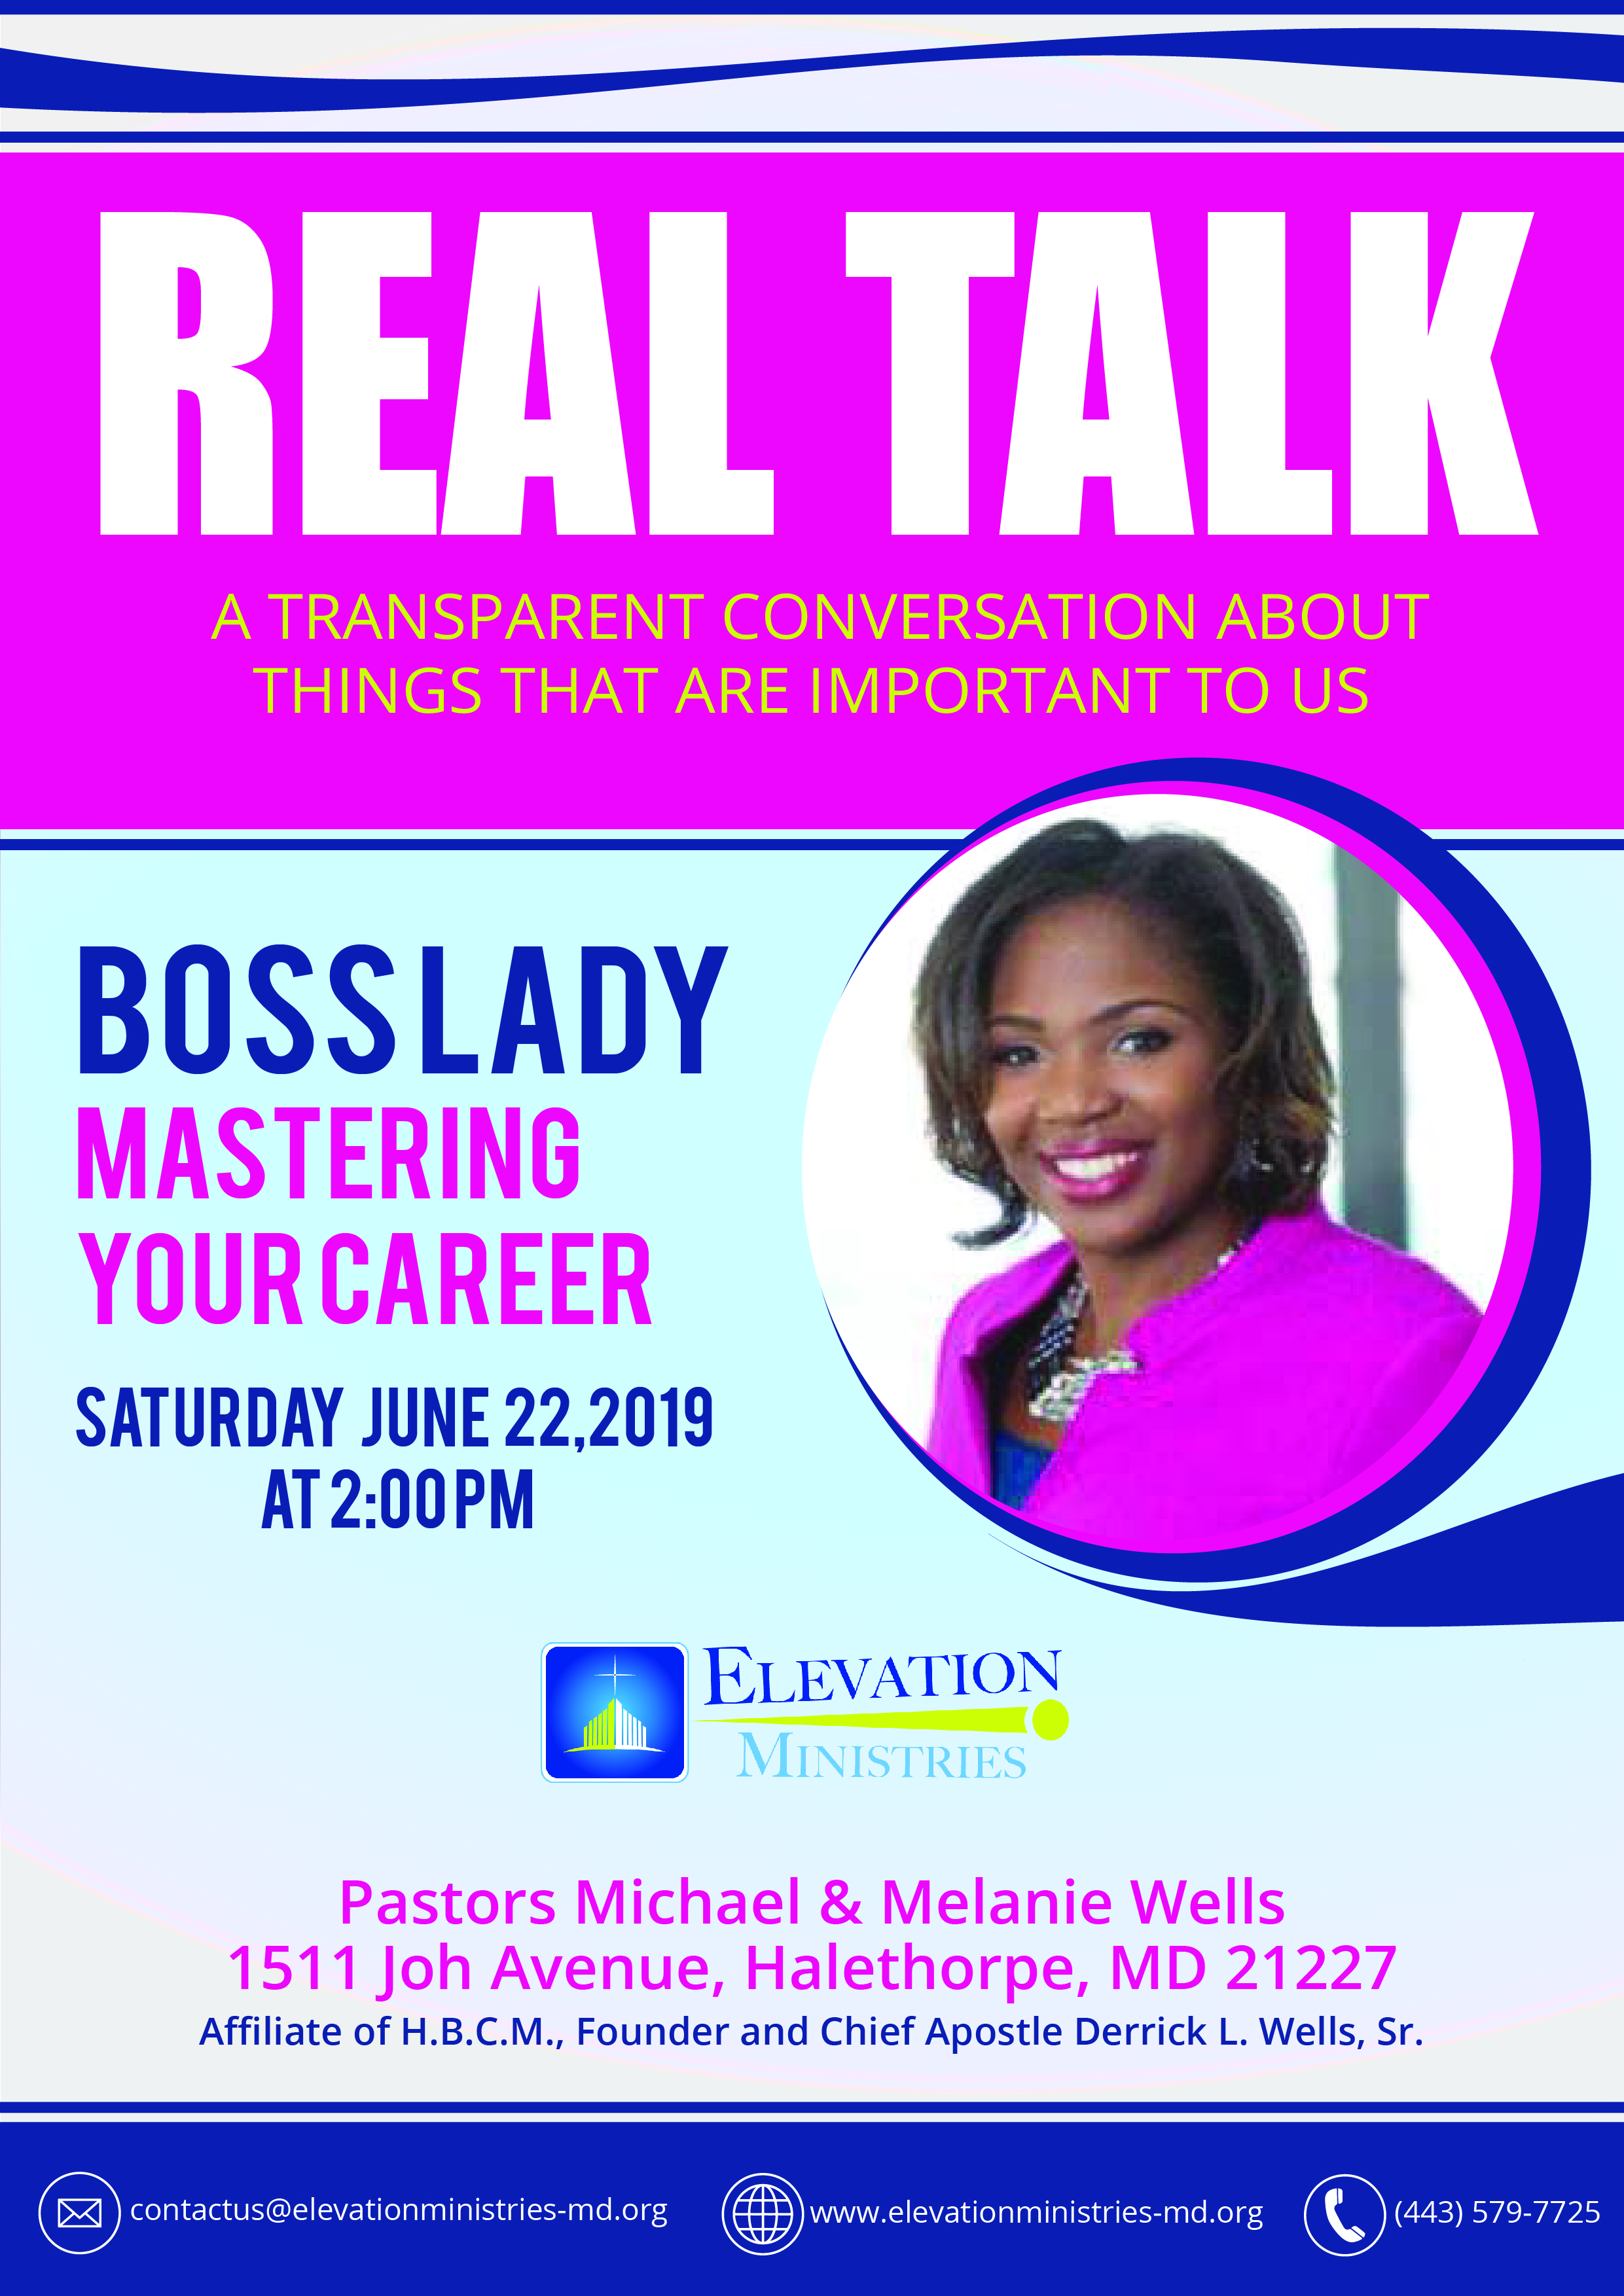 Real Talk Boss Lady Mastering Your Career Saturday June 22, 2019 at 2:00 PM – Archived